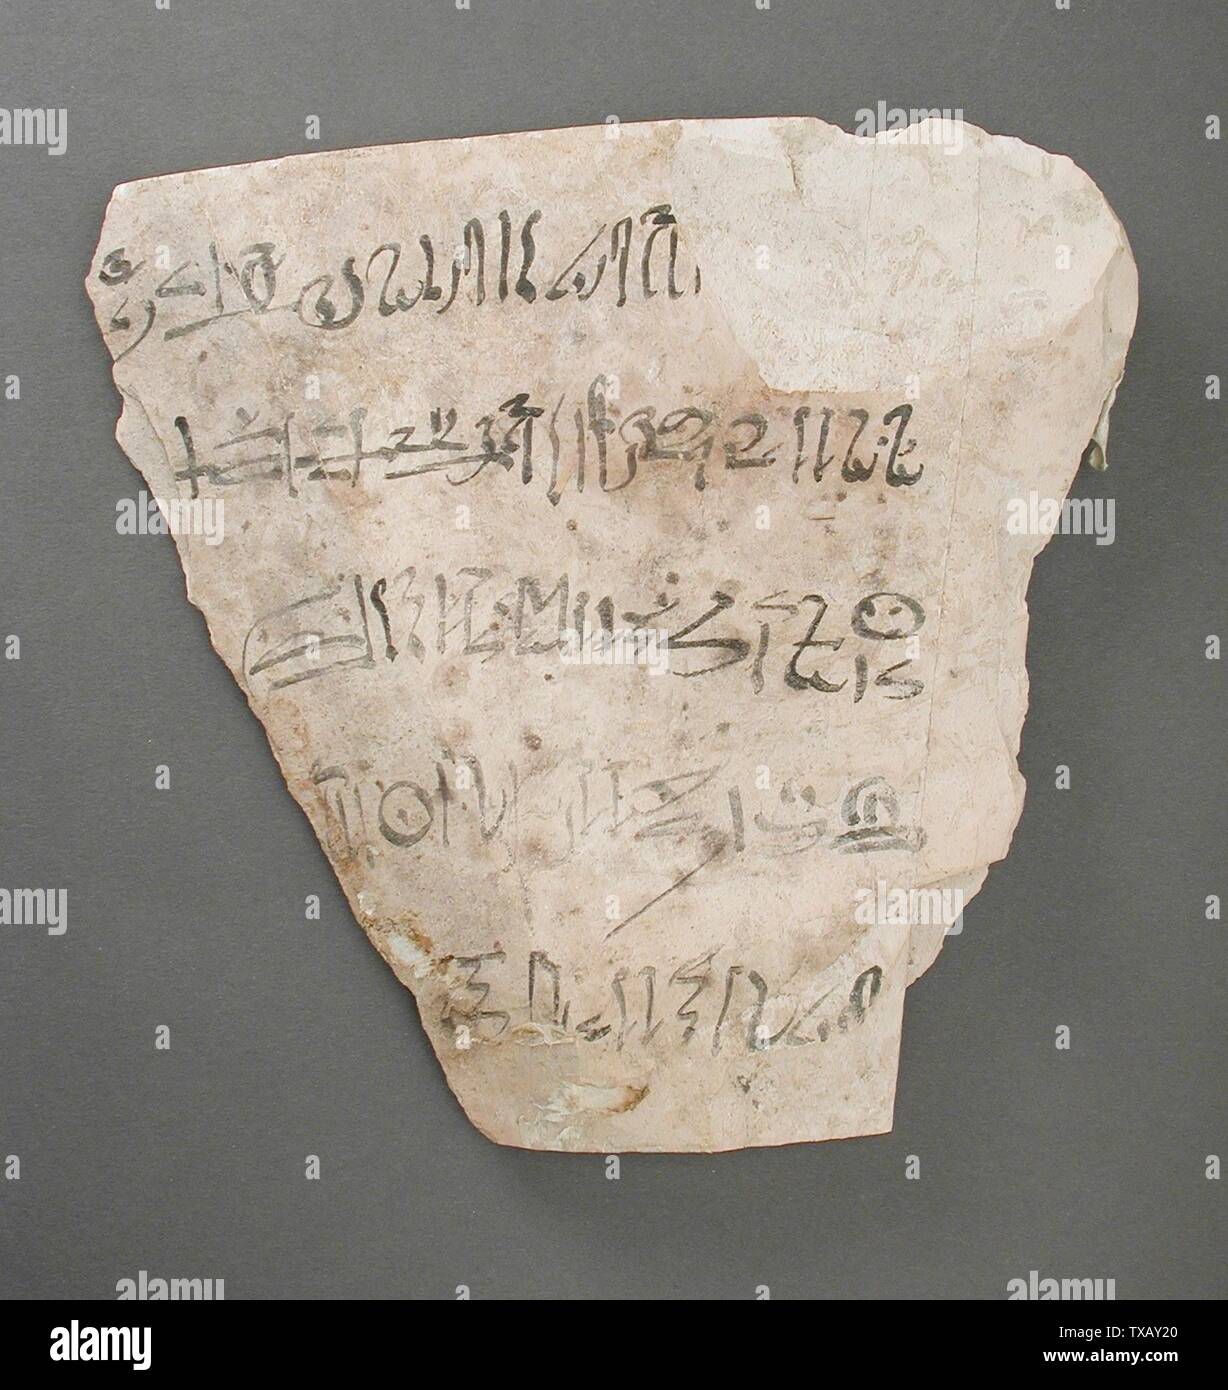 'Ostracon Inscribed with a Letter to the Vizier; Egypt, New Kingdom, 19th and 20th Dynasty (1315 - 1081 BCE) Tools and Equipment; ostraka Limestone 7 1/16 x 7 5/16 in.  (18 x 18.5 cm) Gift of Carl W. Thomas (M.80.203.210) Egyptian Art; 19th and 20th Dynasty (1315 - 1081 BCE); ' - Stock Image